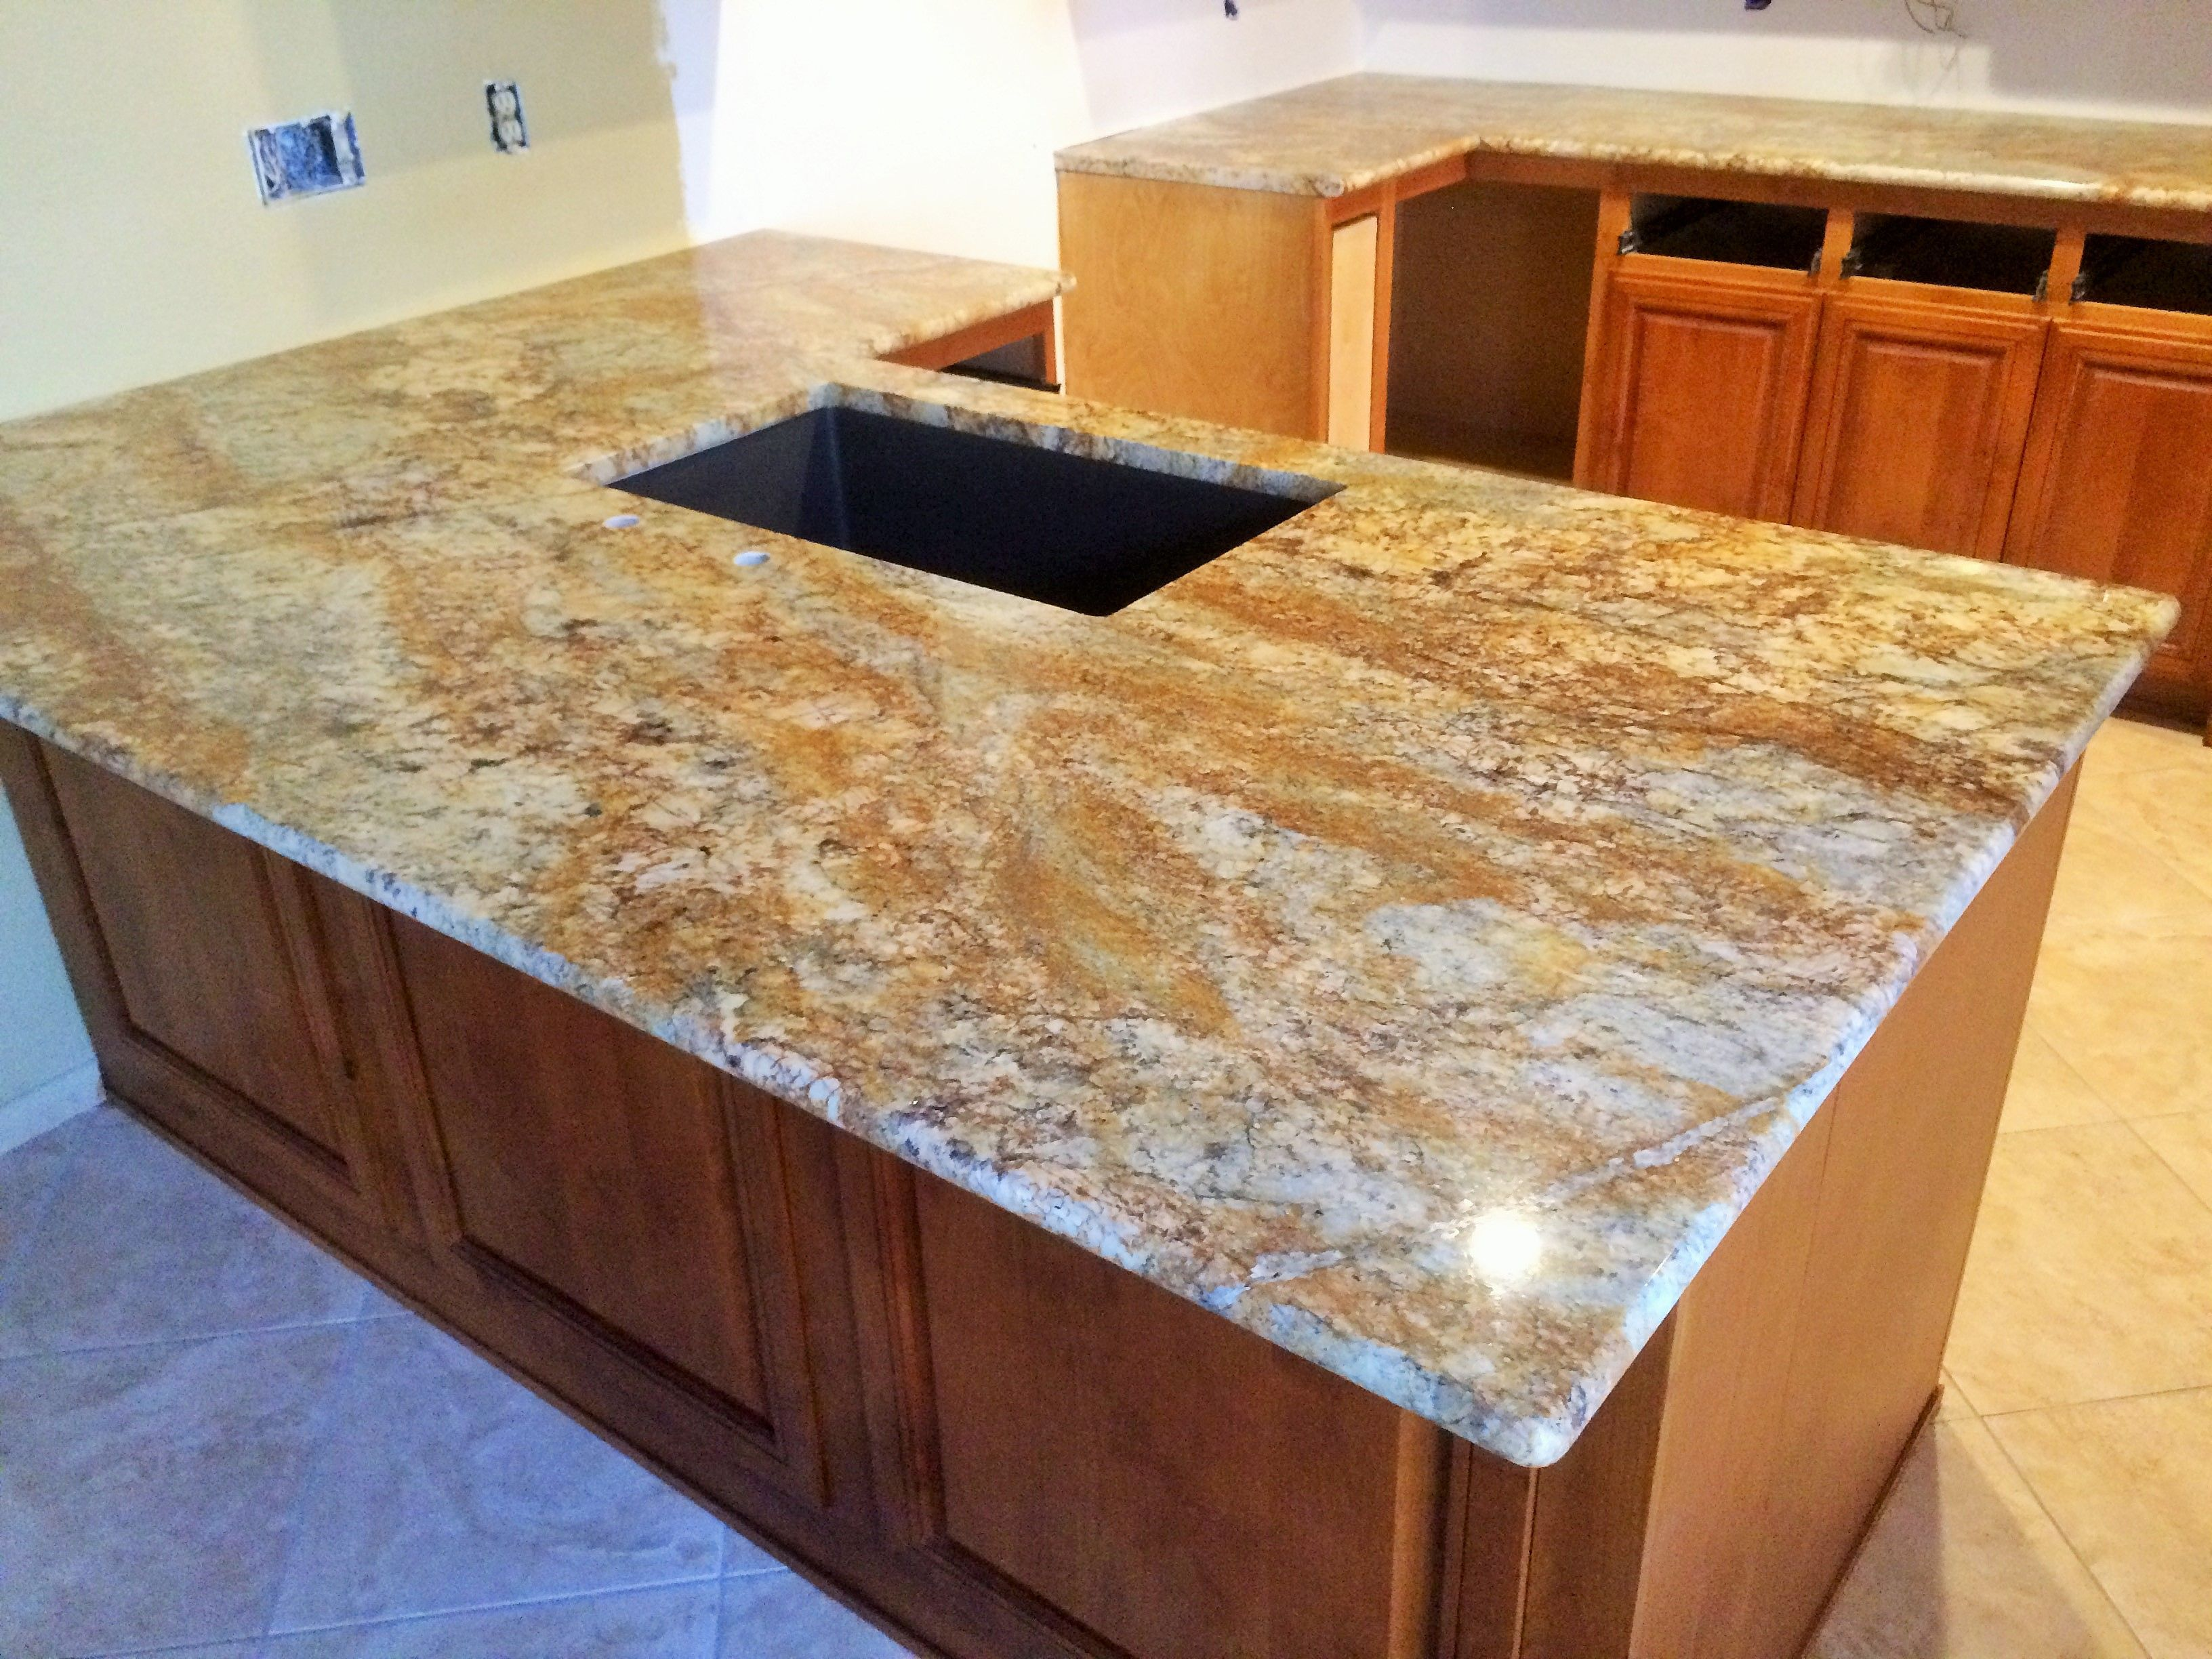 Large Geriba Gold Island Kitchen Remodel Home Decor Kitchen Countertops Granite Countertops Kitchen Design Plans Kitchen Cabinet Colors Kitchen Remodel